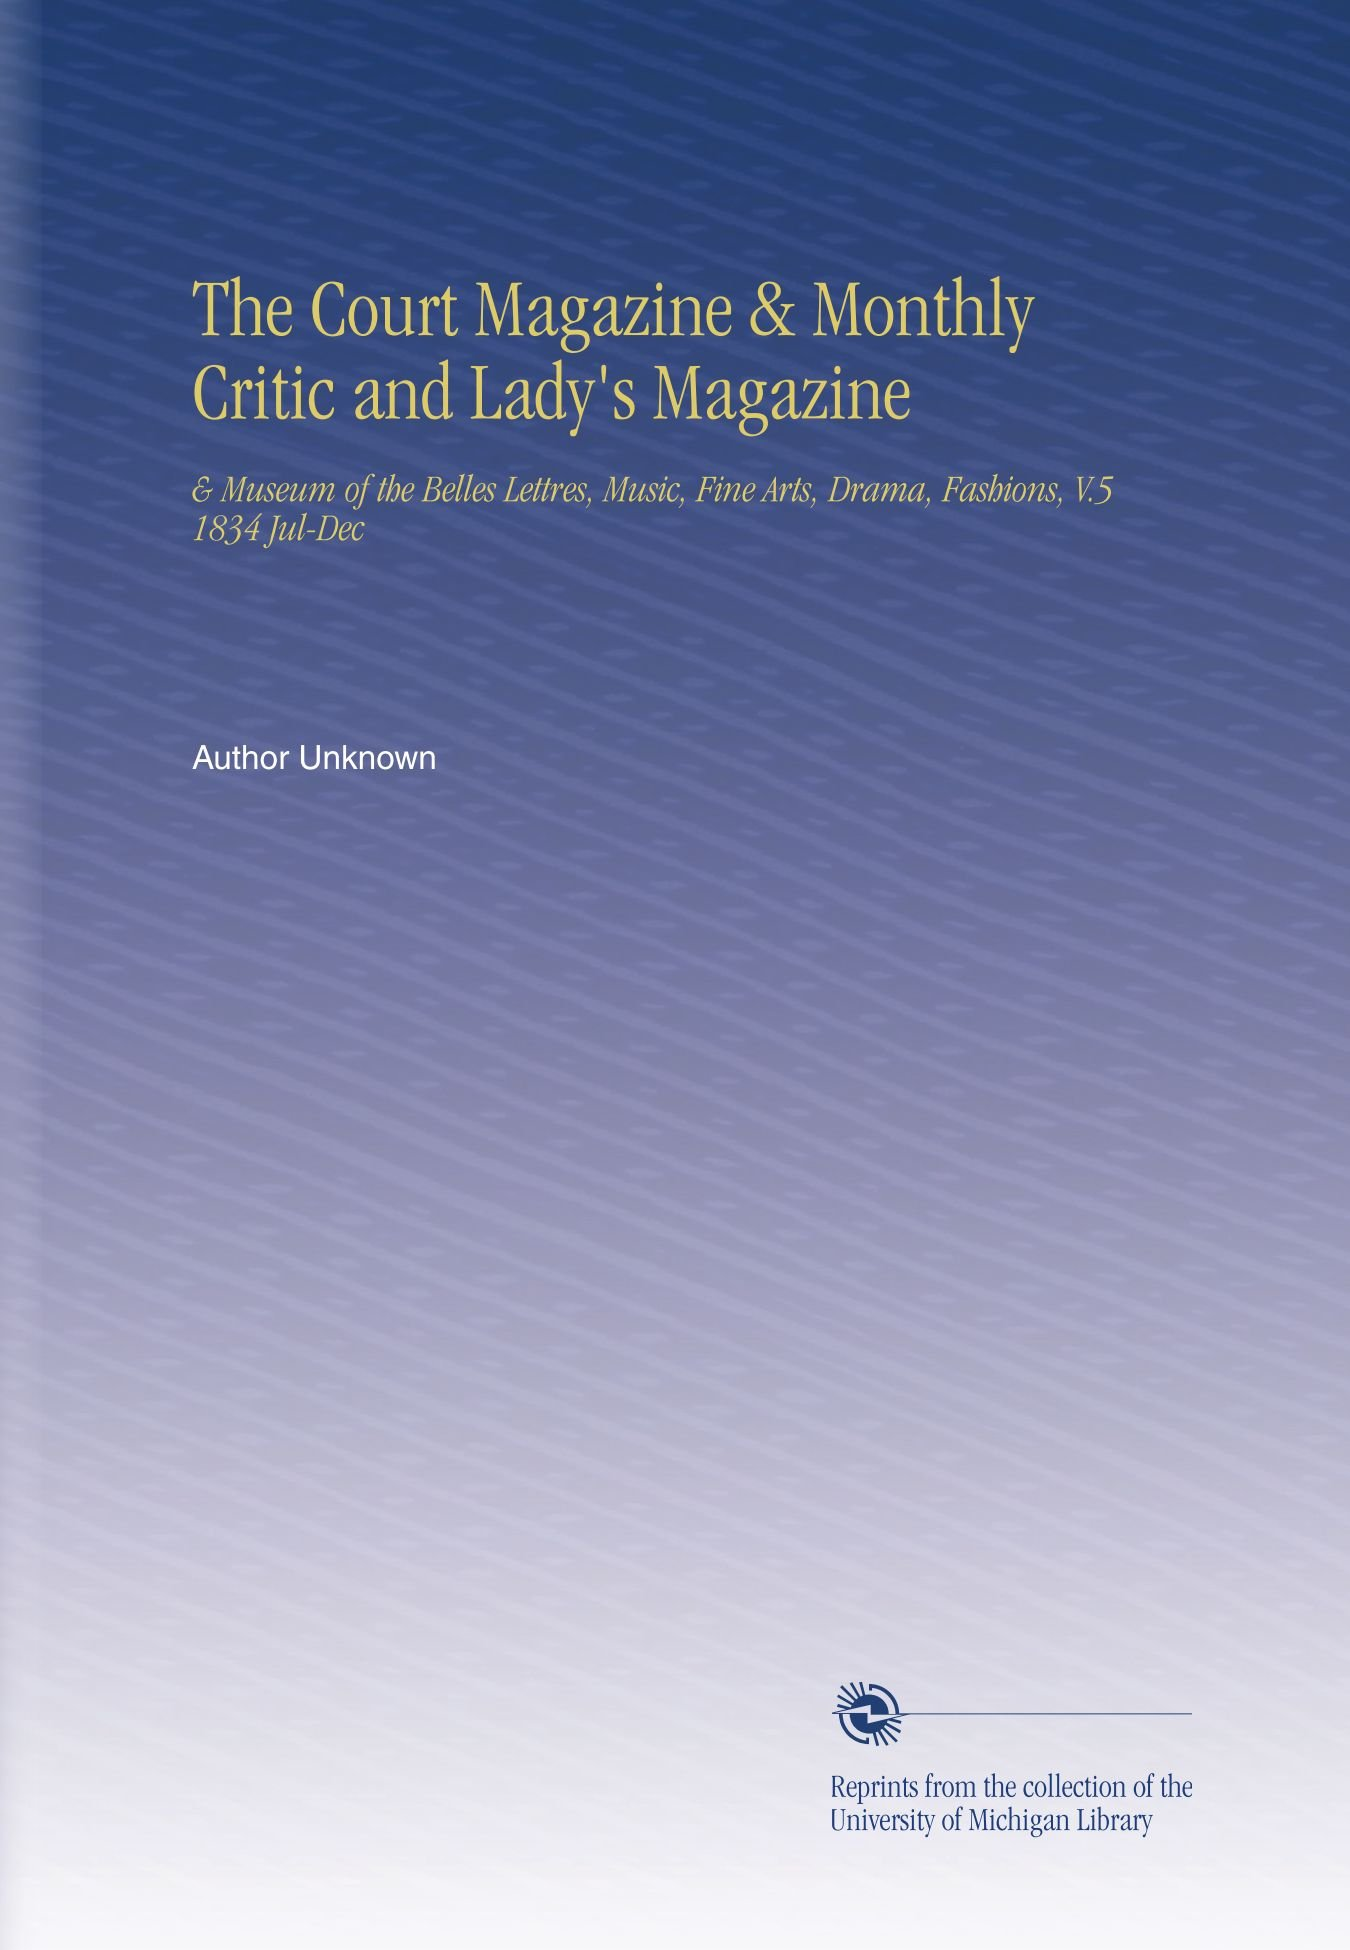 Download The Court Magazine & Monthly Critic and Lady's Magazine: & Museum of the Belles Lettres, Music, Fine Arts, Drama, Fashions, V.5 1834 Jul-Dec ebook